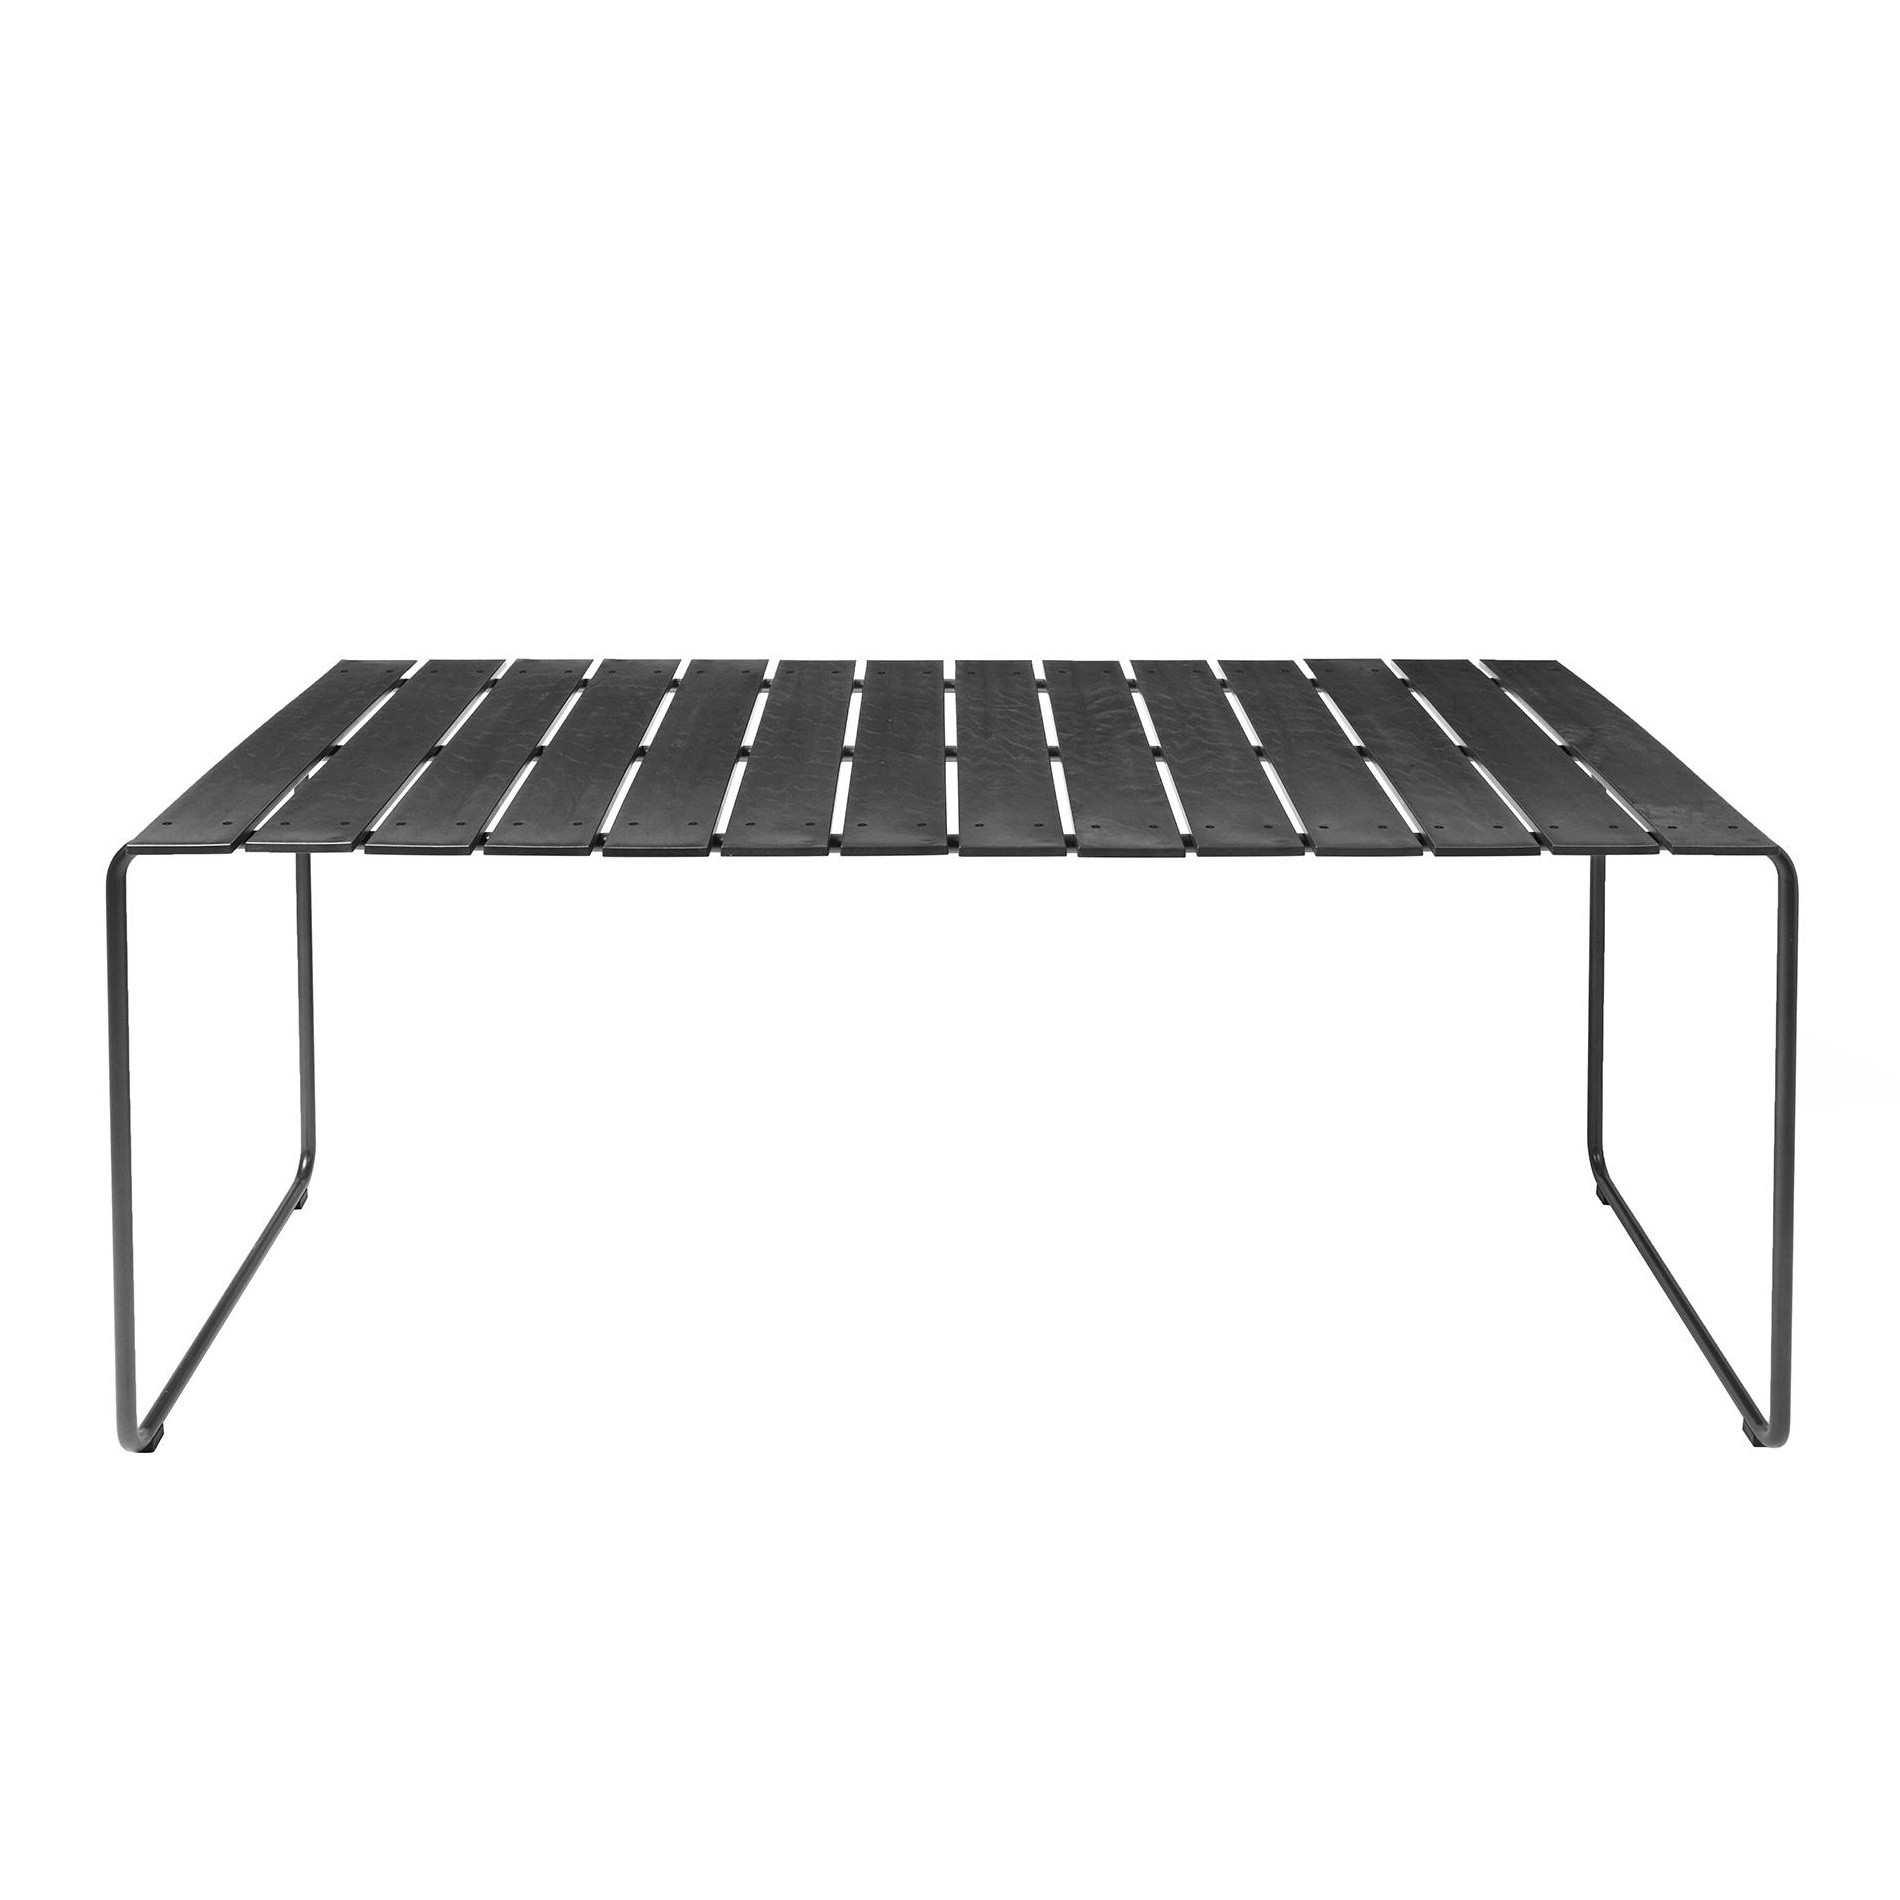 - Mater Ocean Dining Table 140x70cm AmbienteDirect